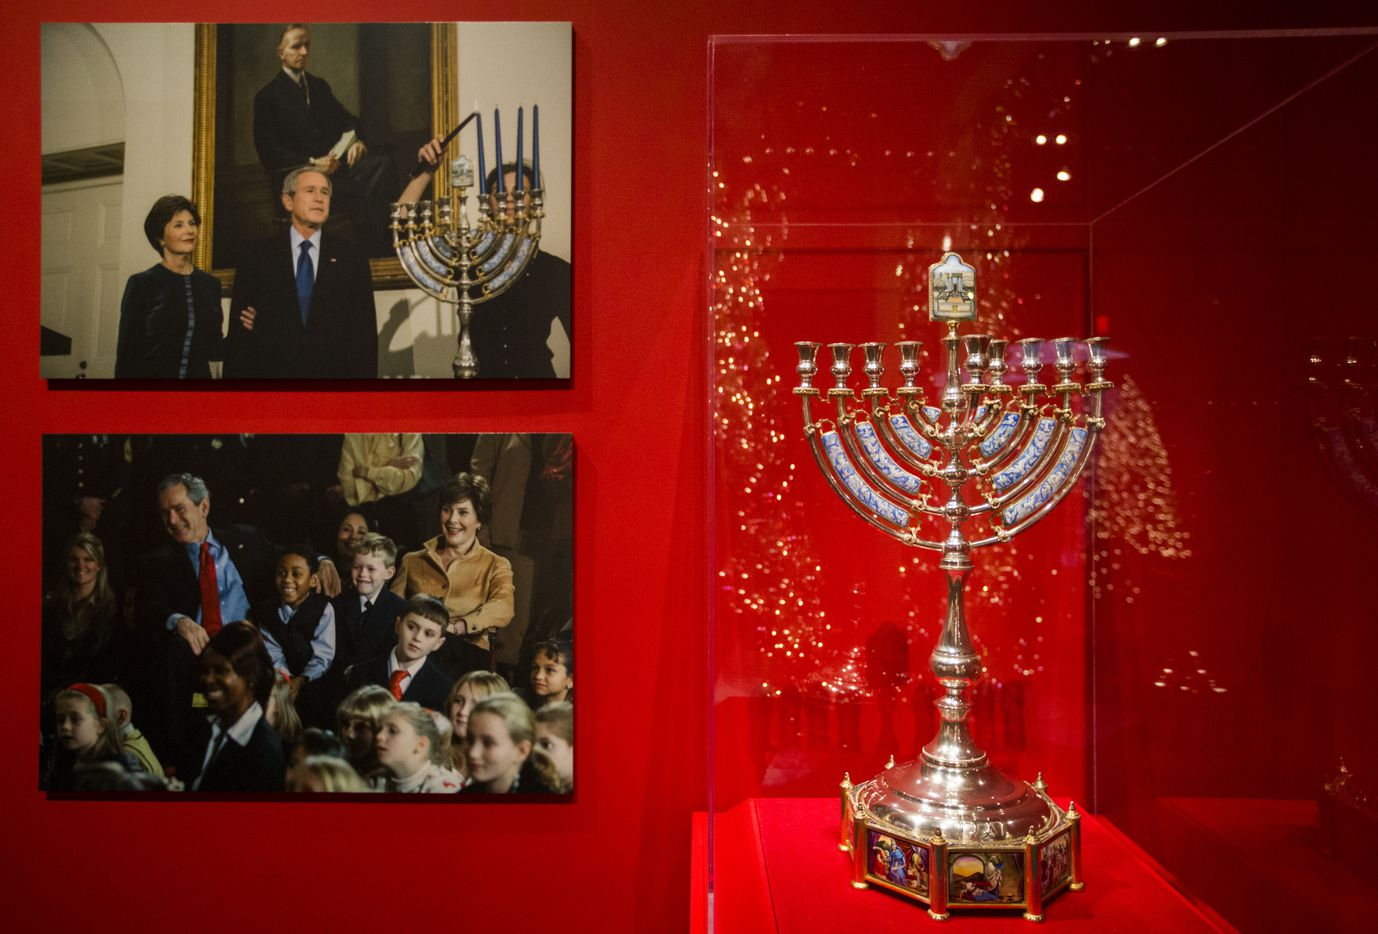 A handmade silver Hanukkah lamp borrowed from Lisa and Alan Stern is displayed at a Christmas exhibit at The George W. Bush Presidential Center and Library on Thursday, November 15, 2018 on the SMU campus in Dallas. This year's theme is Deck the Halls and Welcome All: Christmas at the White House 2006. (Ashley Landis/The Dallas Morning News)